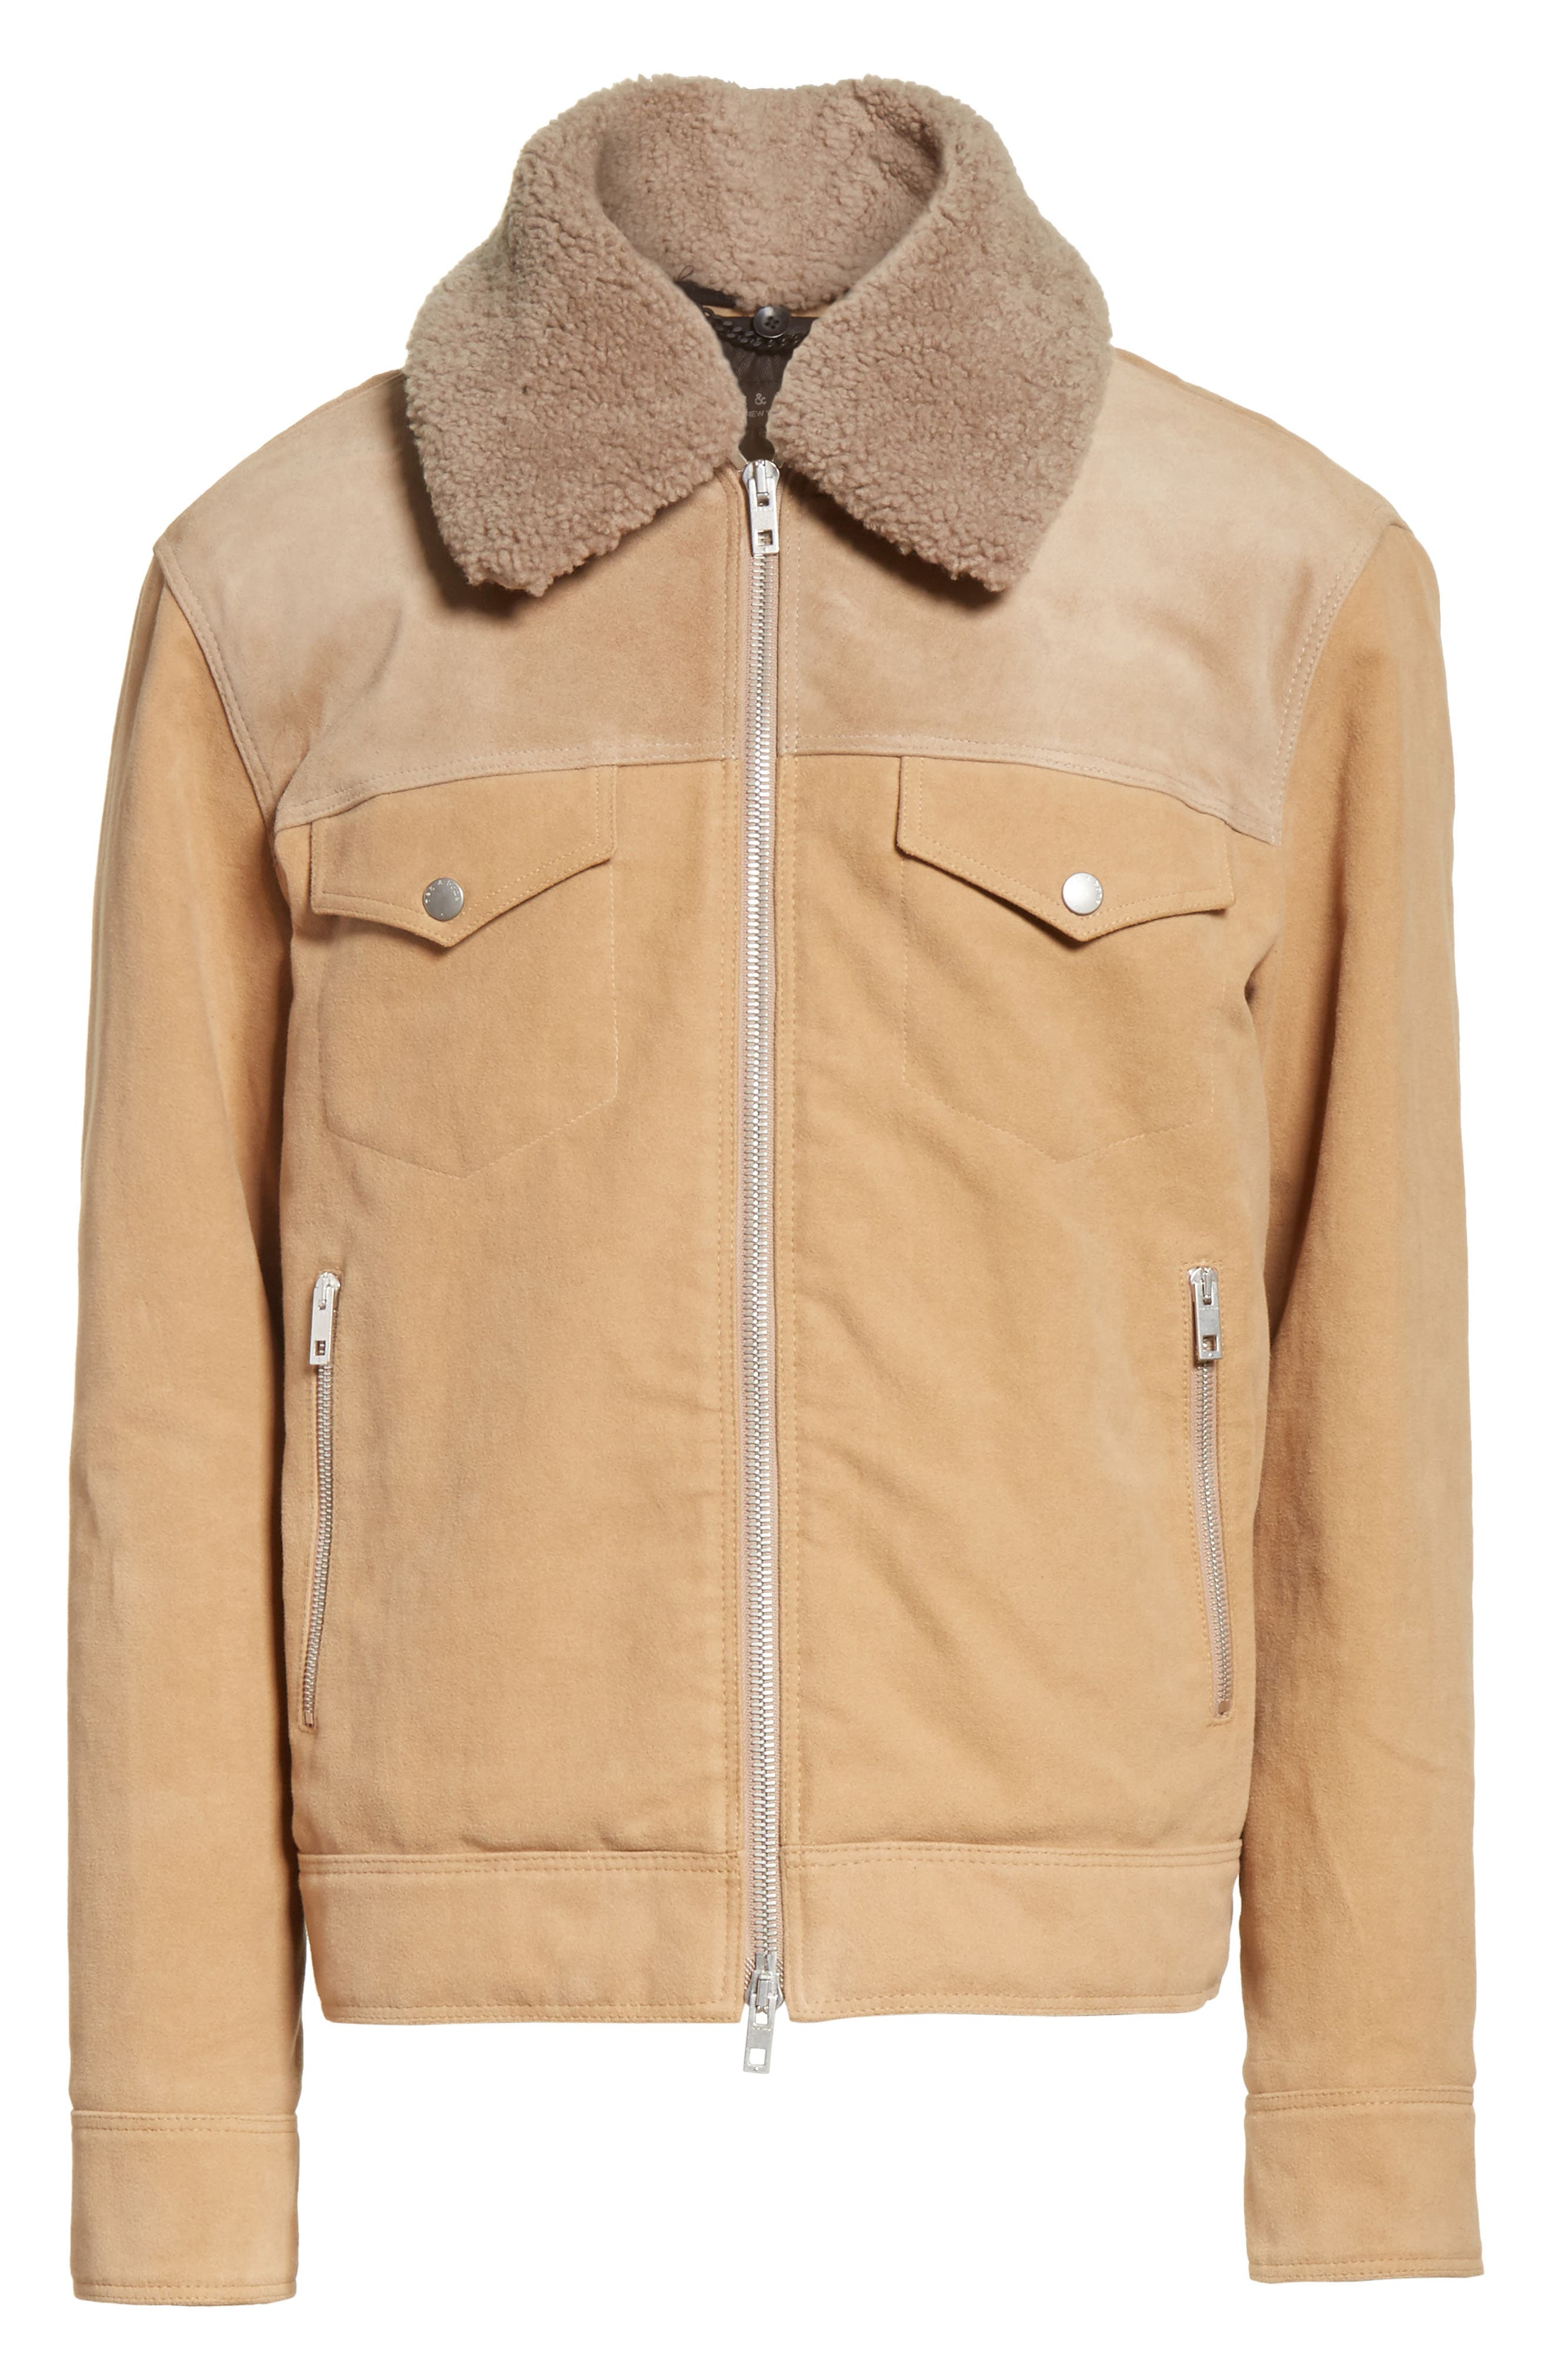 Matthew Work Jacket with Genuine Shearling Collar,                             Alternate thumbnail 6, color,                             Camel